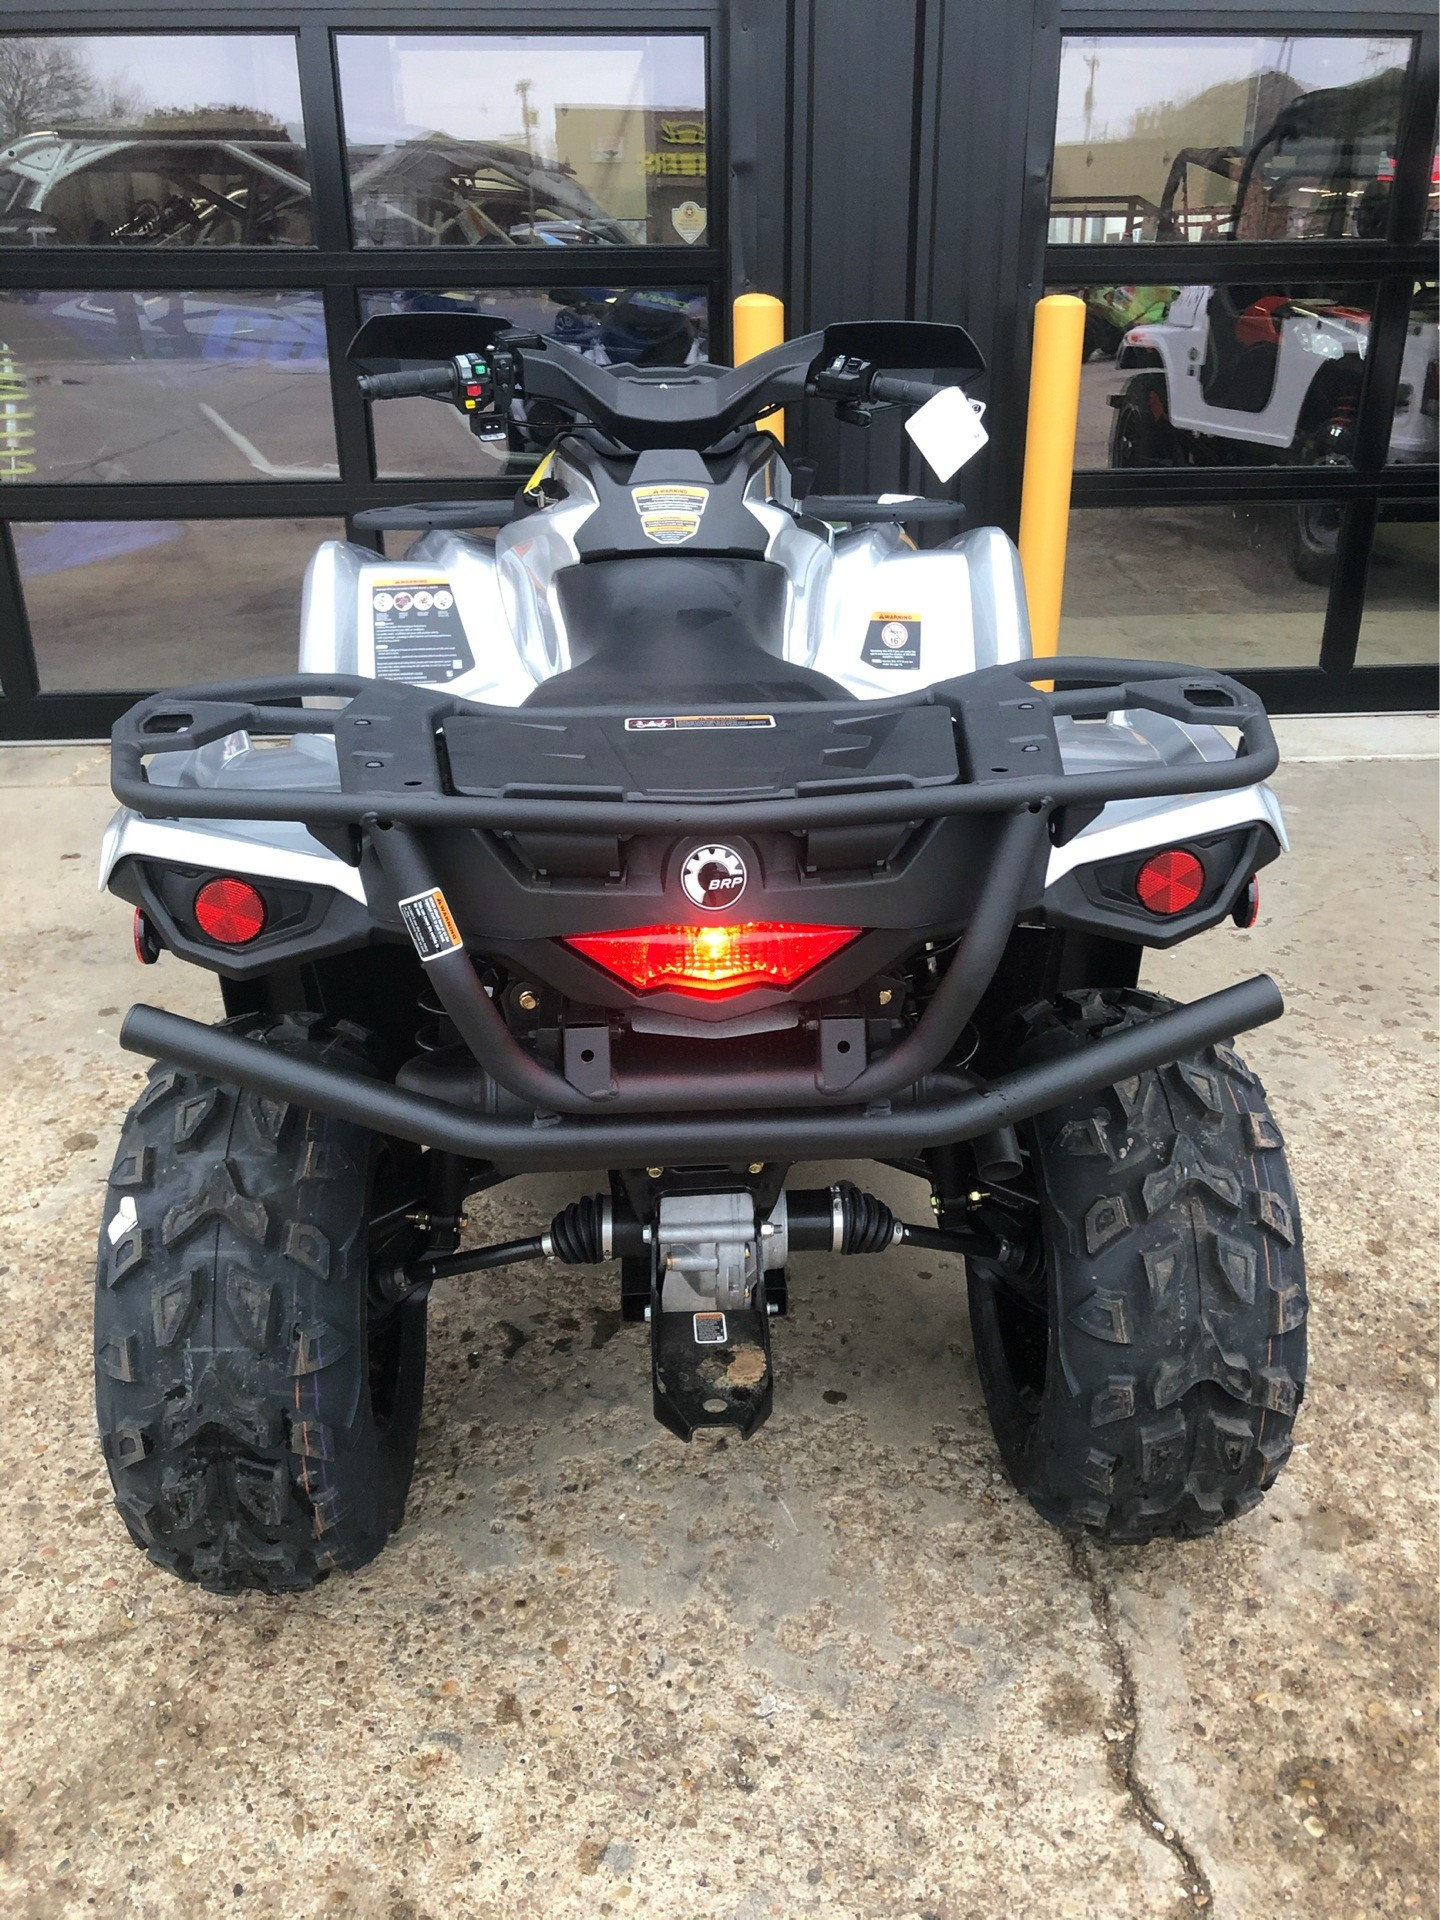 2020 Can-Am Outlander XT 570 in Amarillo, Texas - Photo 4